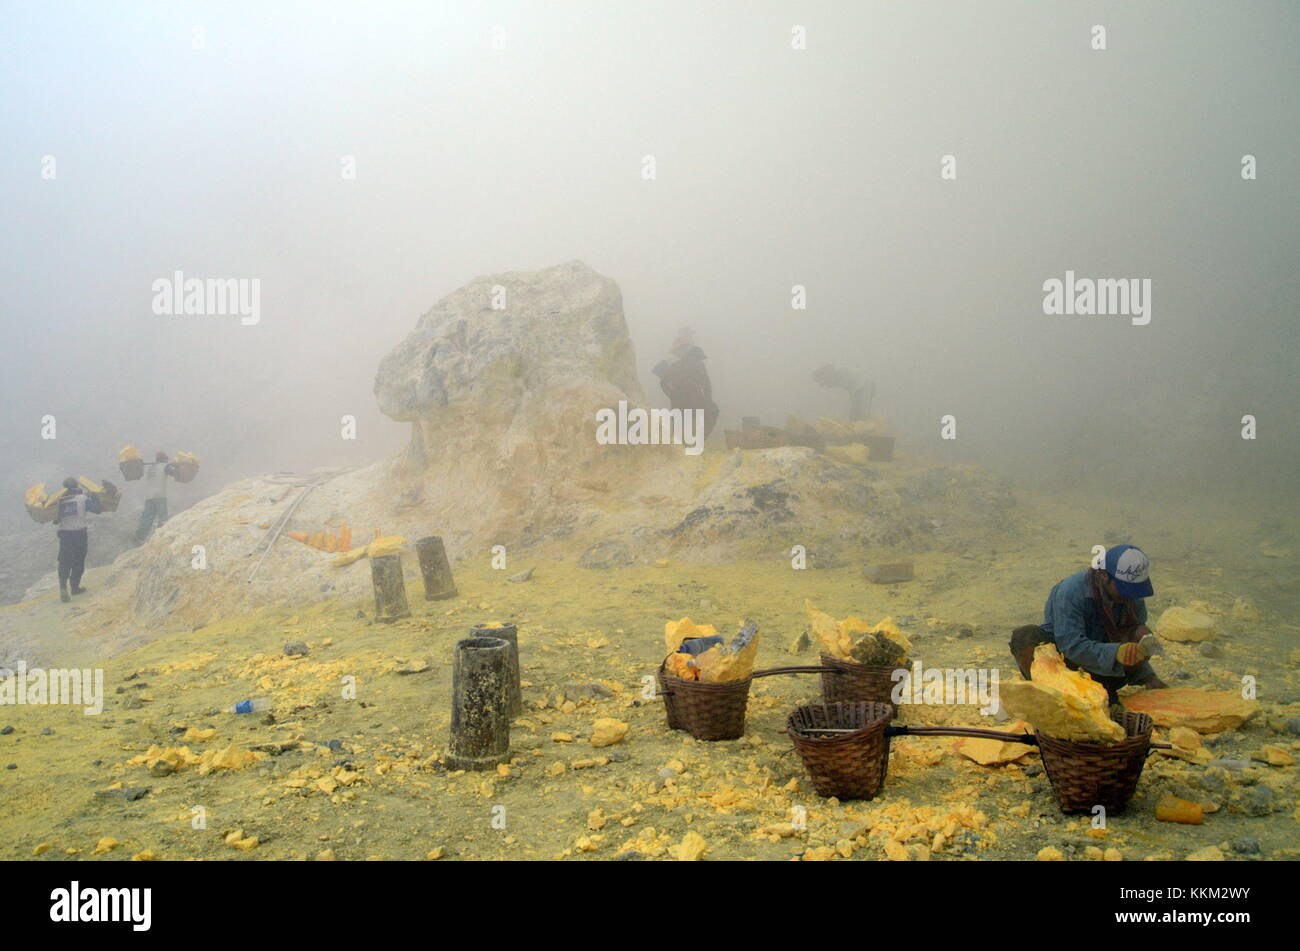 The sulfur mine in Kawah Ijen near Banyuwangi, East Java - Indonesia. The smoke is toxic Sulfur Dioxide gas being - Stock Image